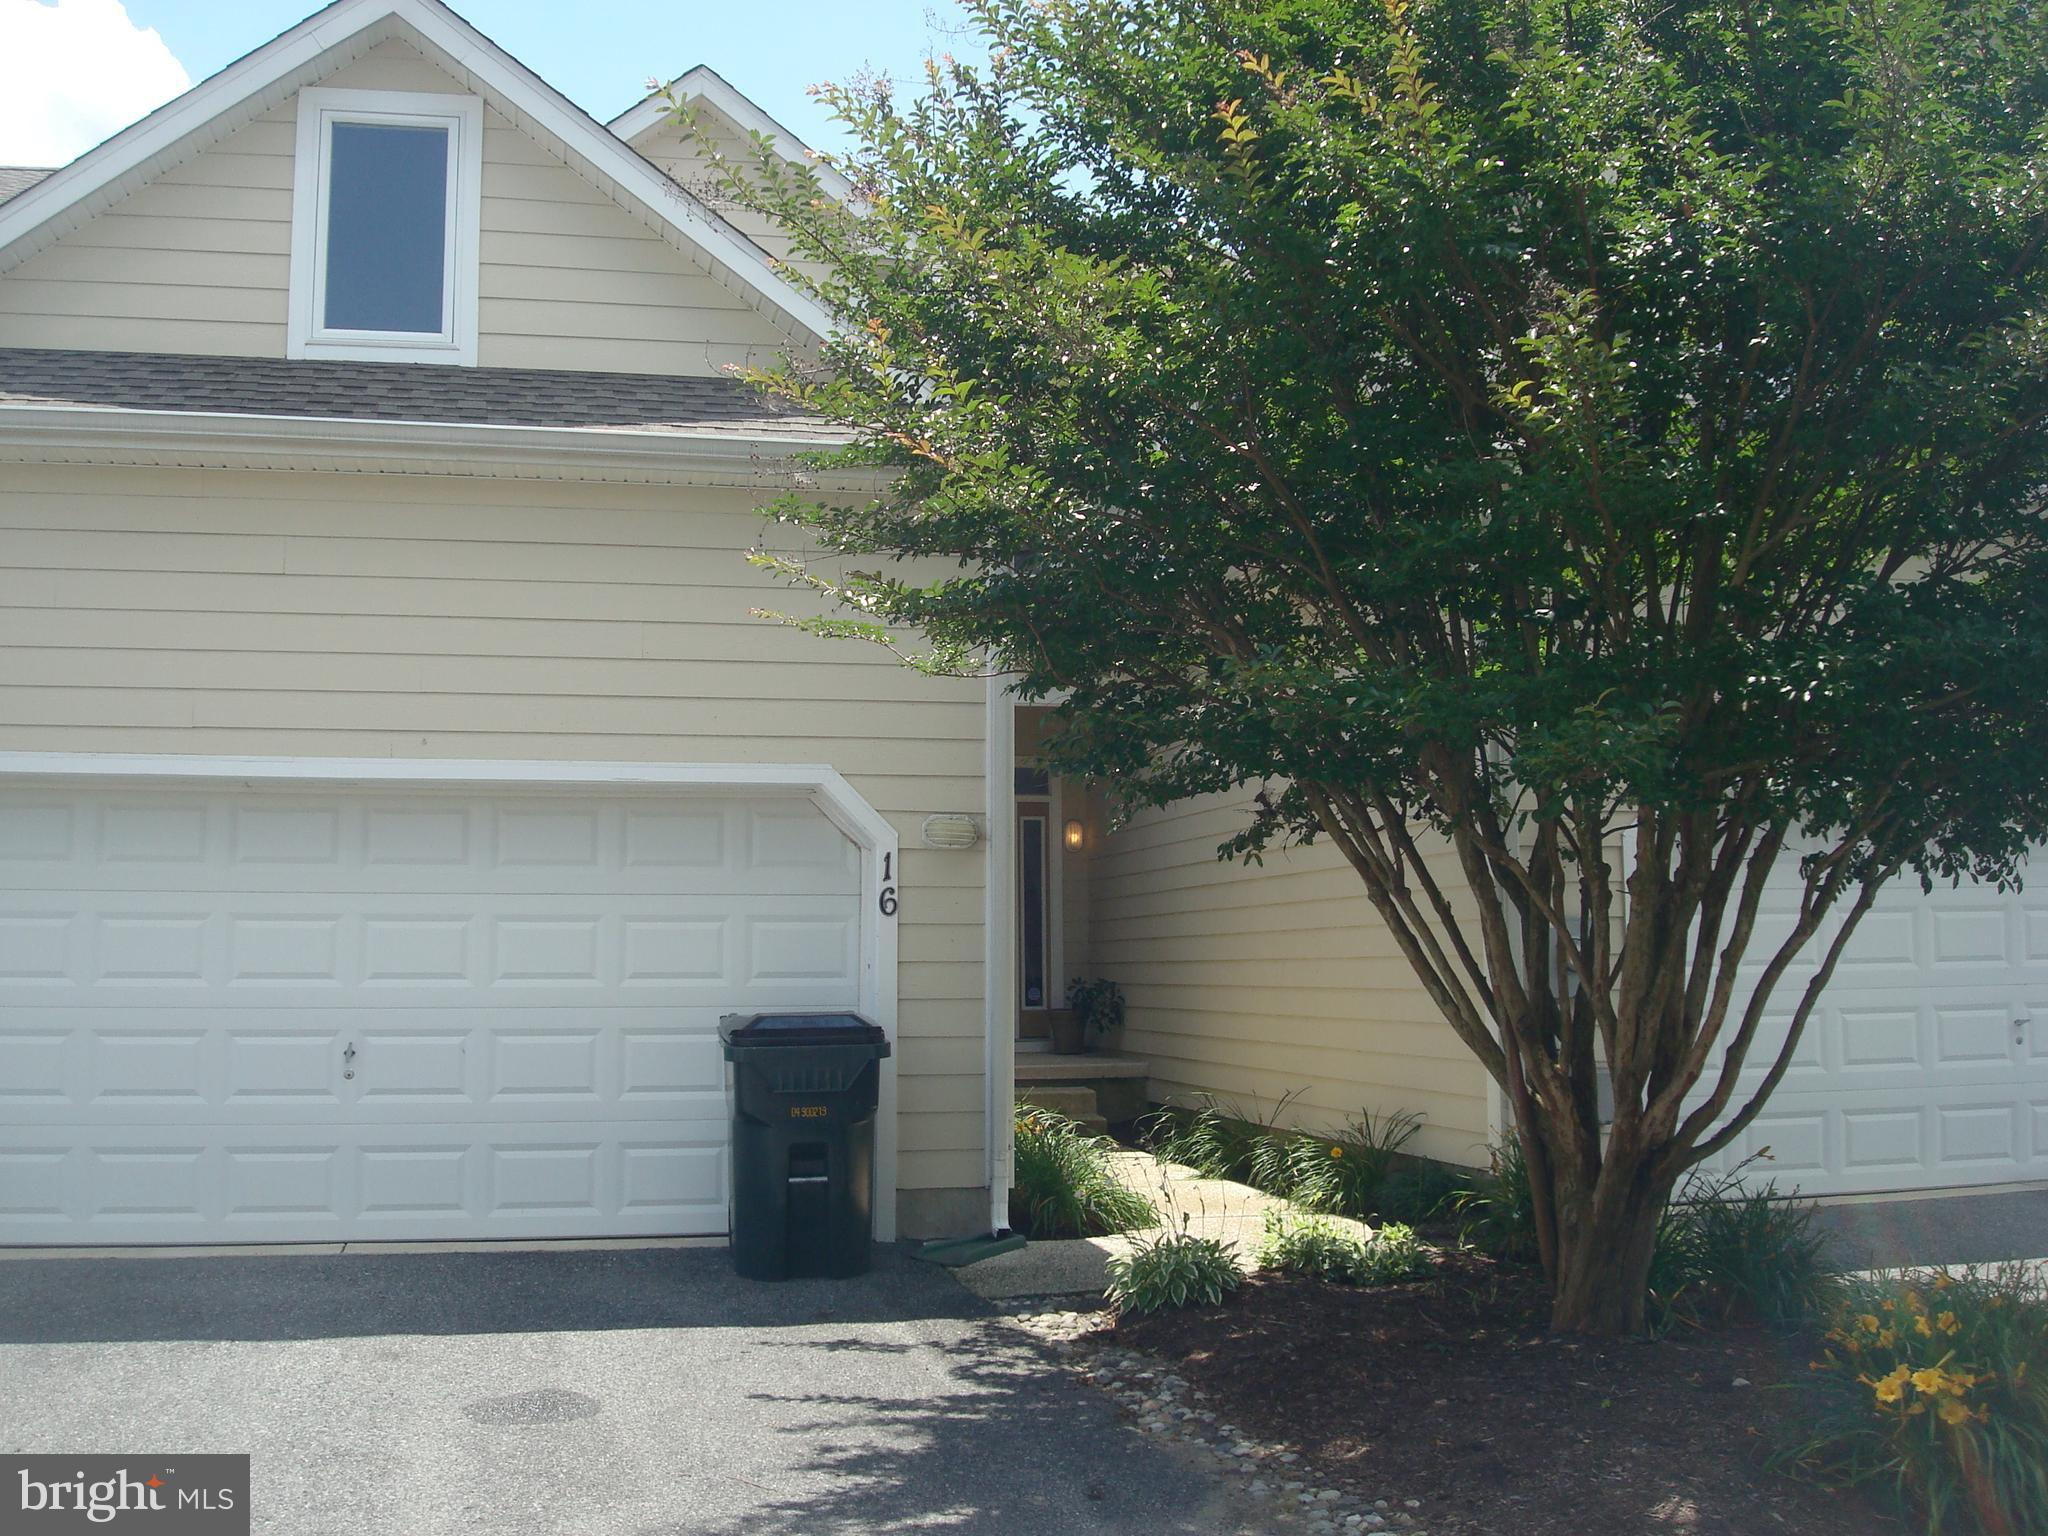 Don't miss this spacious 4 bedroom / 3 bath 2 story townhome with 2 car garage in Plantations East.